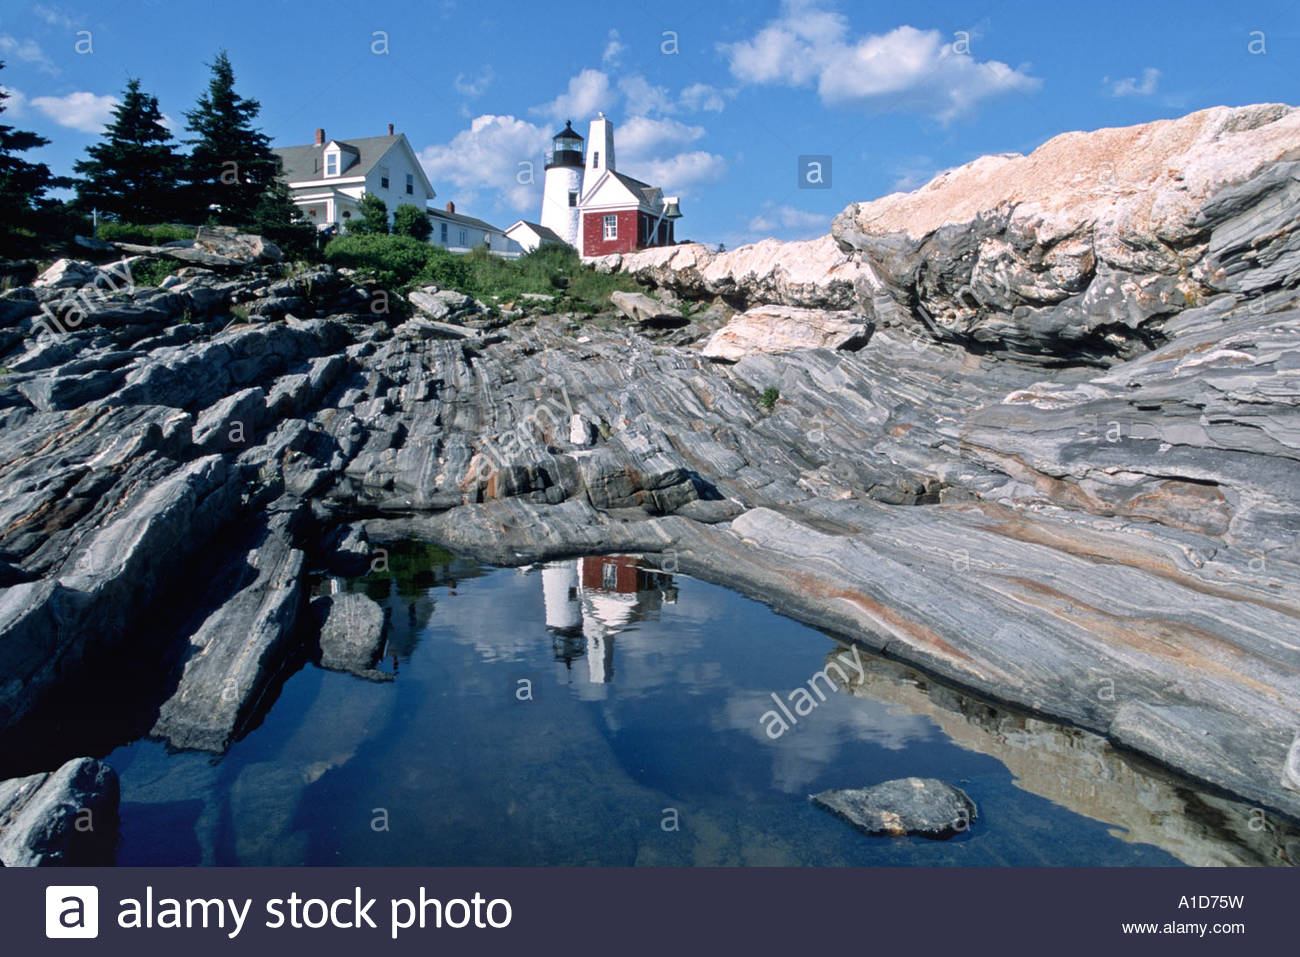 The Pemaquid lighthouse reflects in a nearby pool of water. Maine. - Stock Image